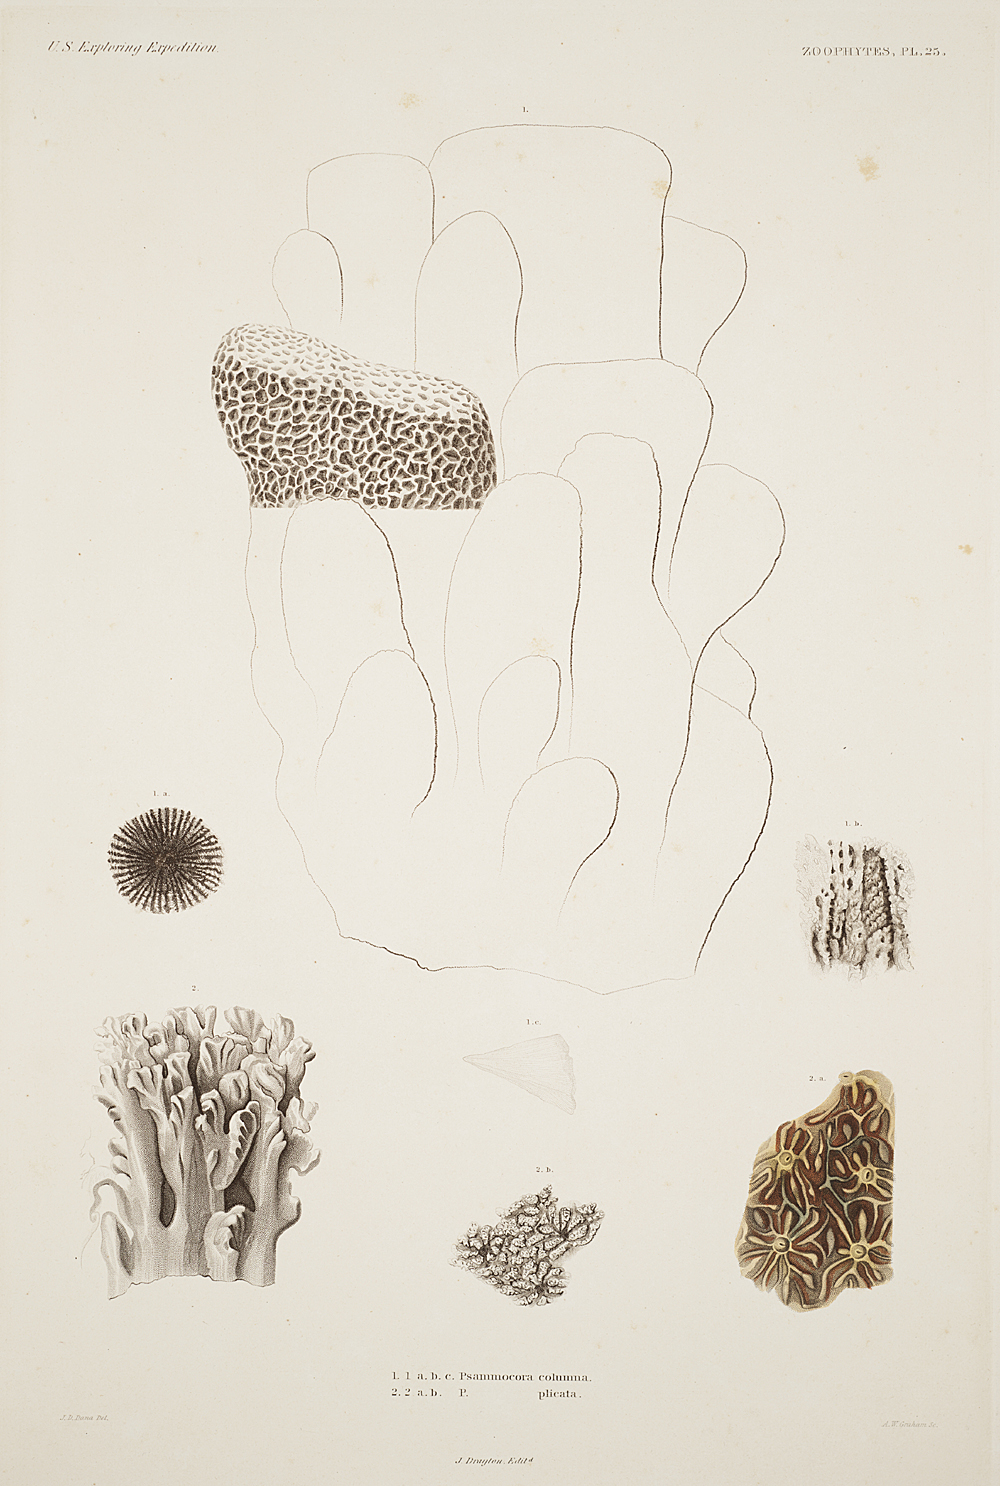 Zoophytes, Plate 25,  Image number:sil19-09-067b